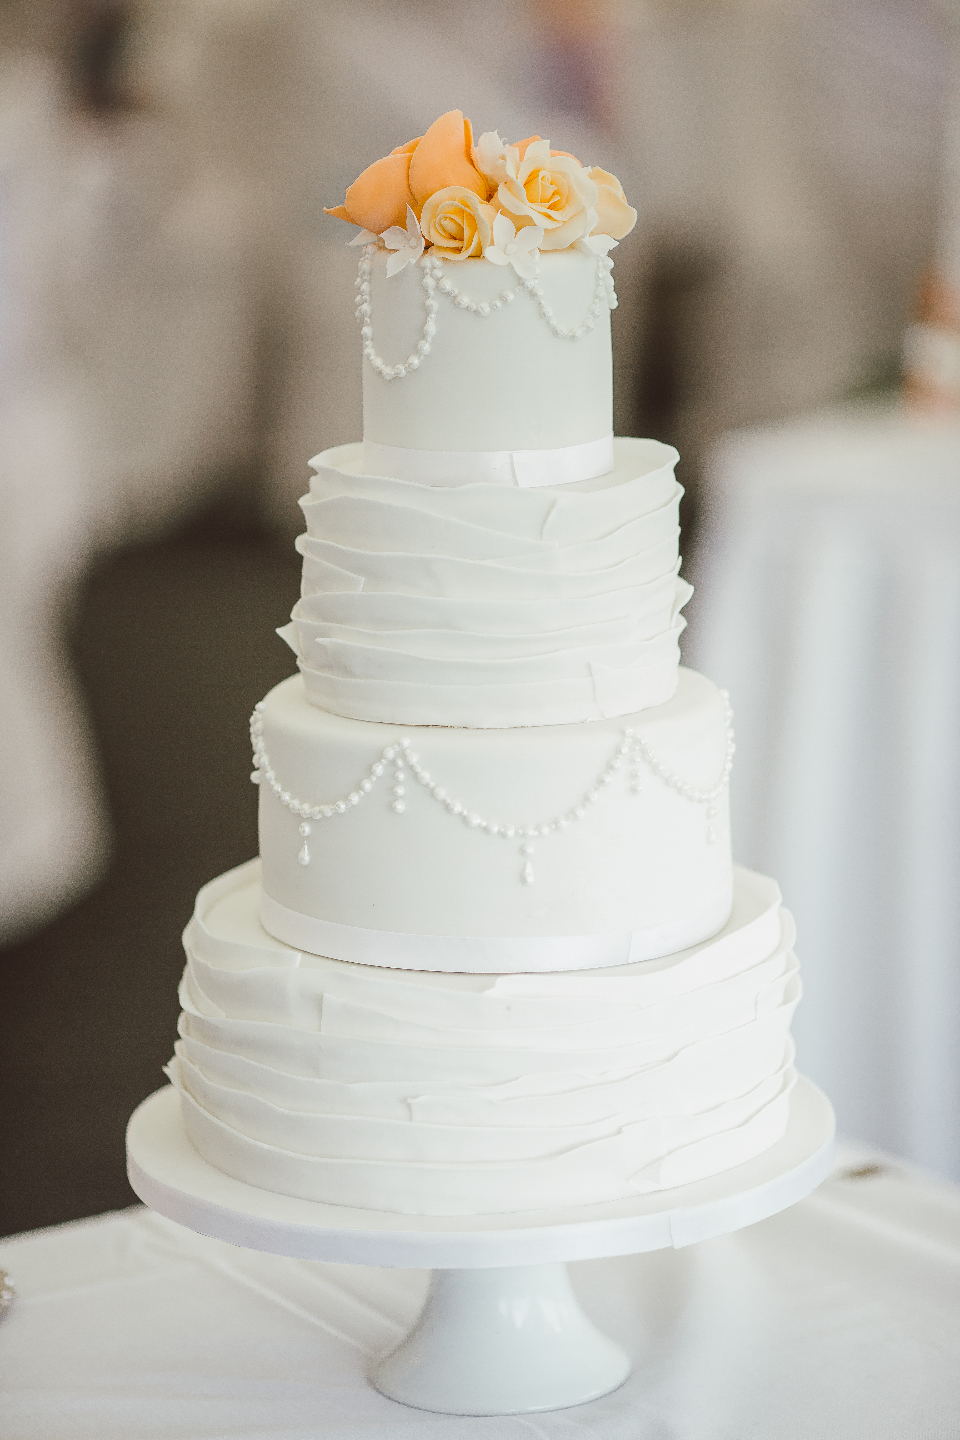 cake wedding white tiered love romantic